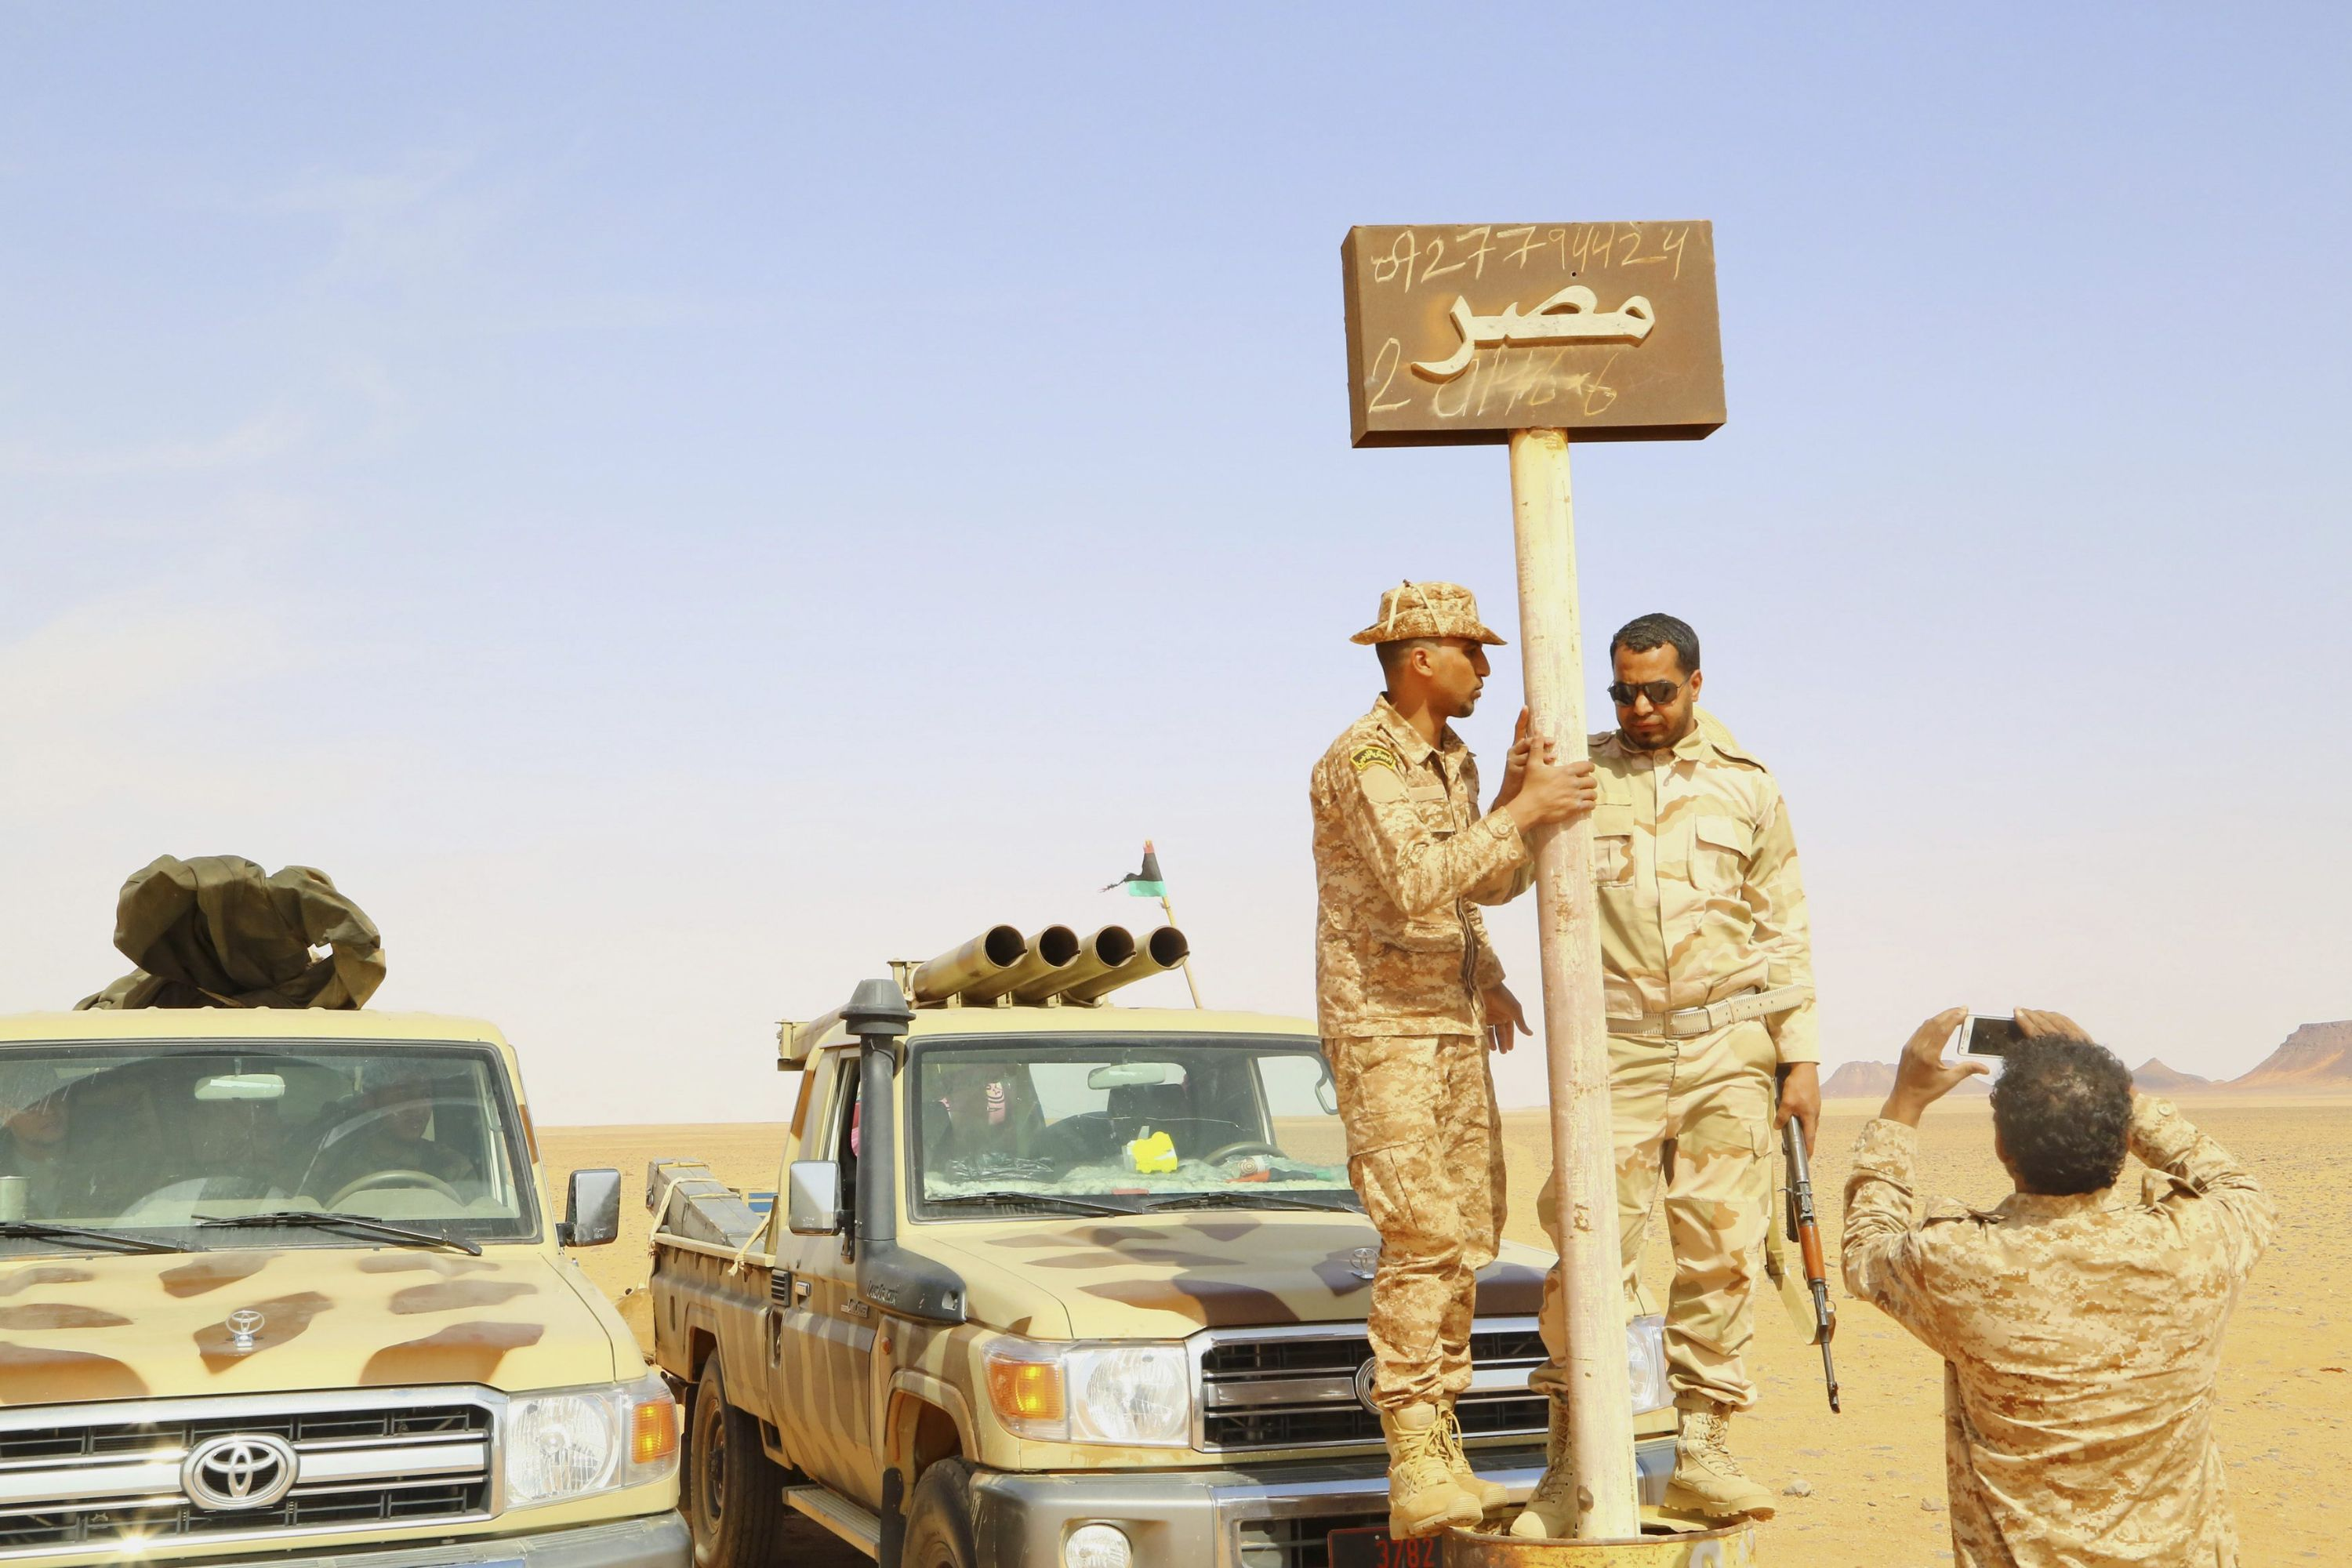 Libyan fighters from Kufra stand next to an Egypt sign at the Libyan-Egyptian border. (Reuters)